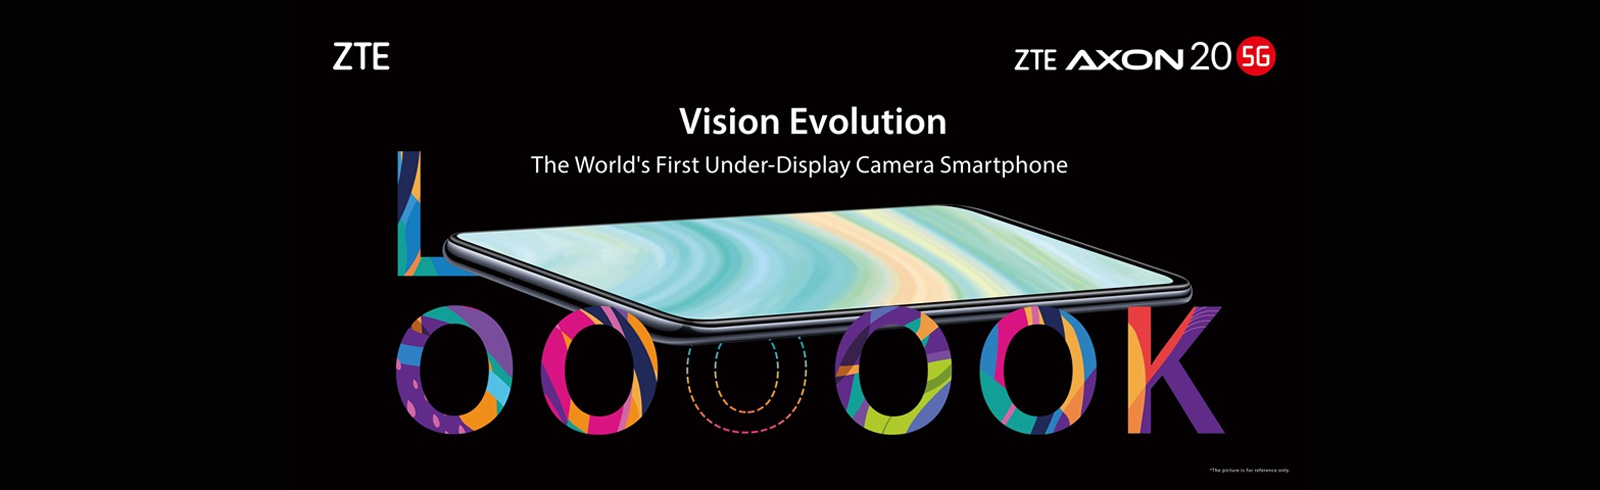 ZTE Axon 20 5G is launched - the first smartphone with an under-display camera, costs USD 322